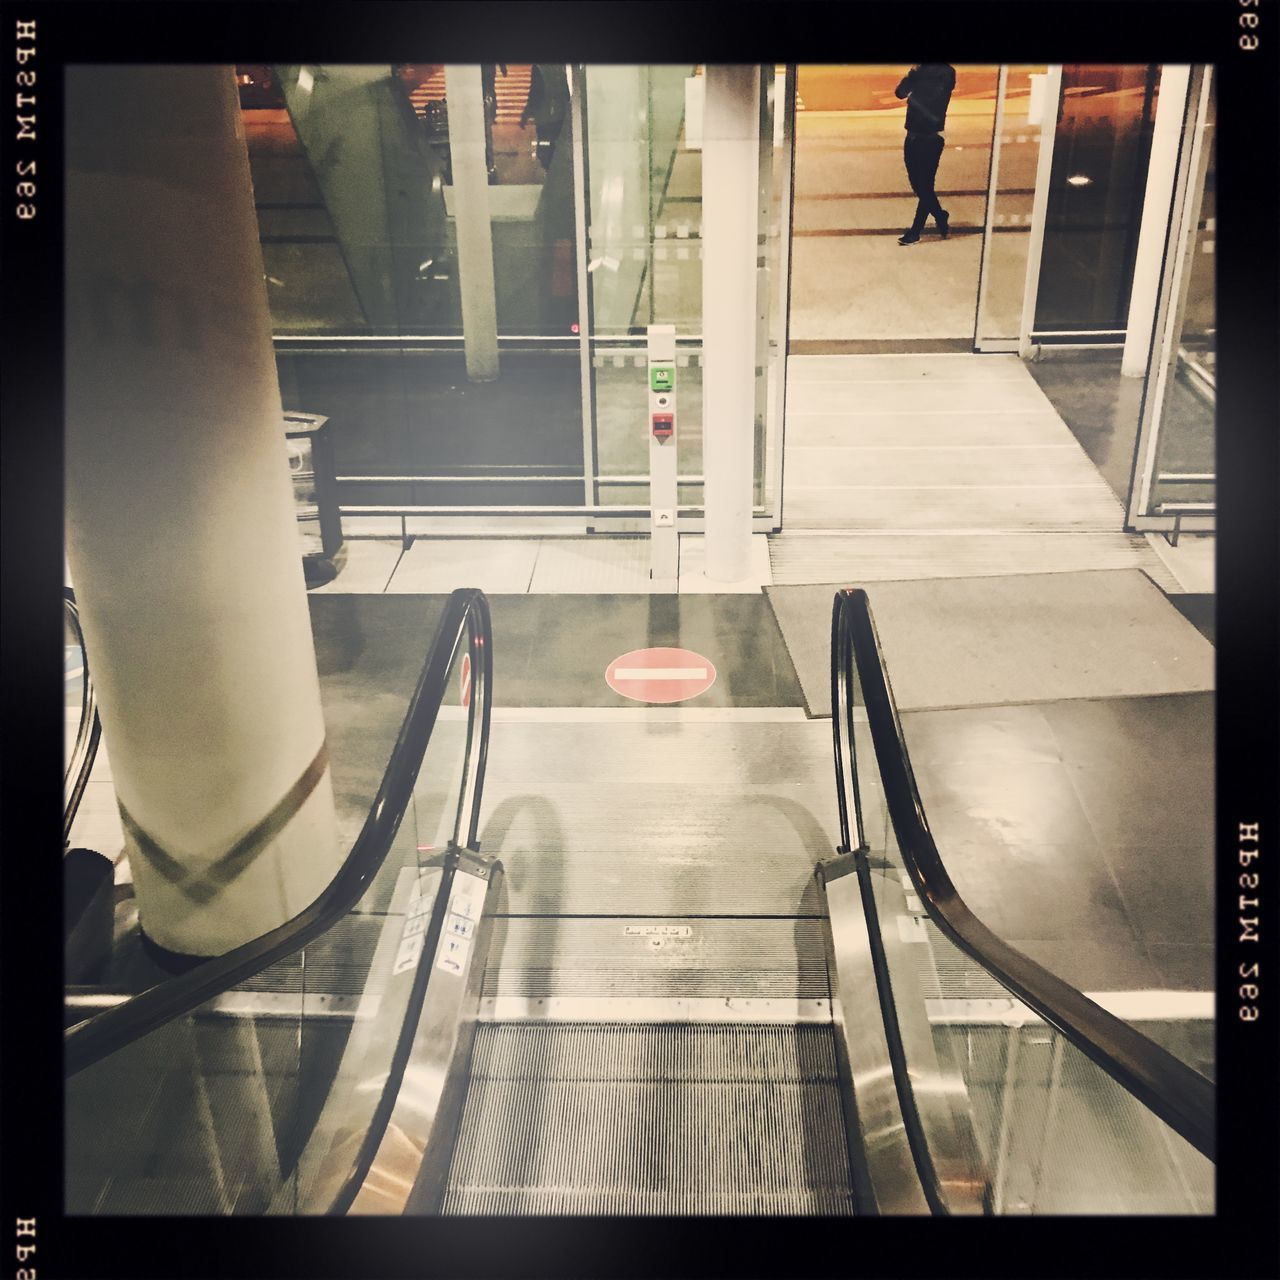 Architecture Auto Post Production Filter Built Structure Escalator Flooring High Angle View Indoors  Leisure Activity Lifestyles Low Section Men Person Railing Standing Tiled Floor Transfer Print Walking